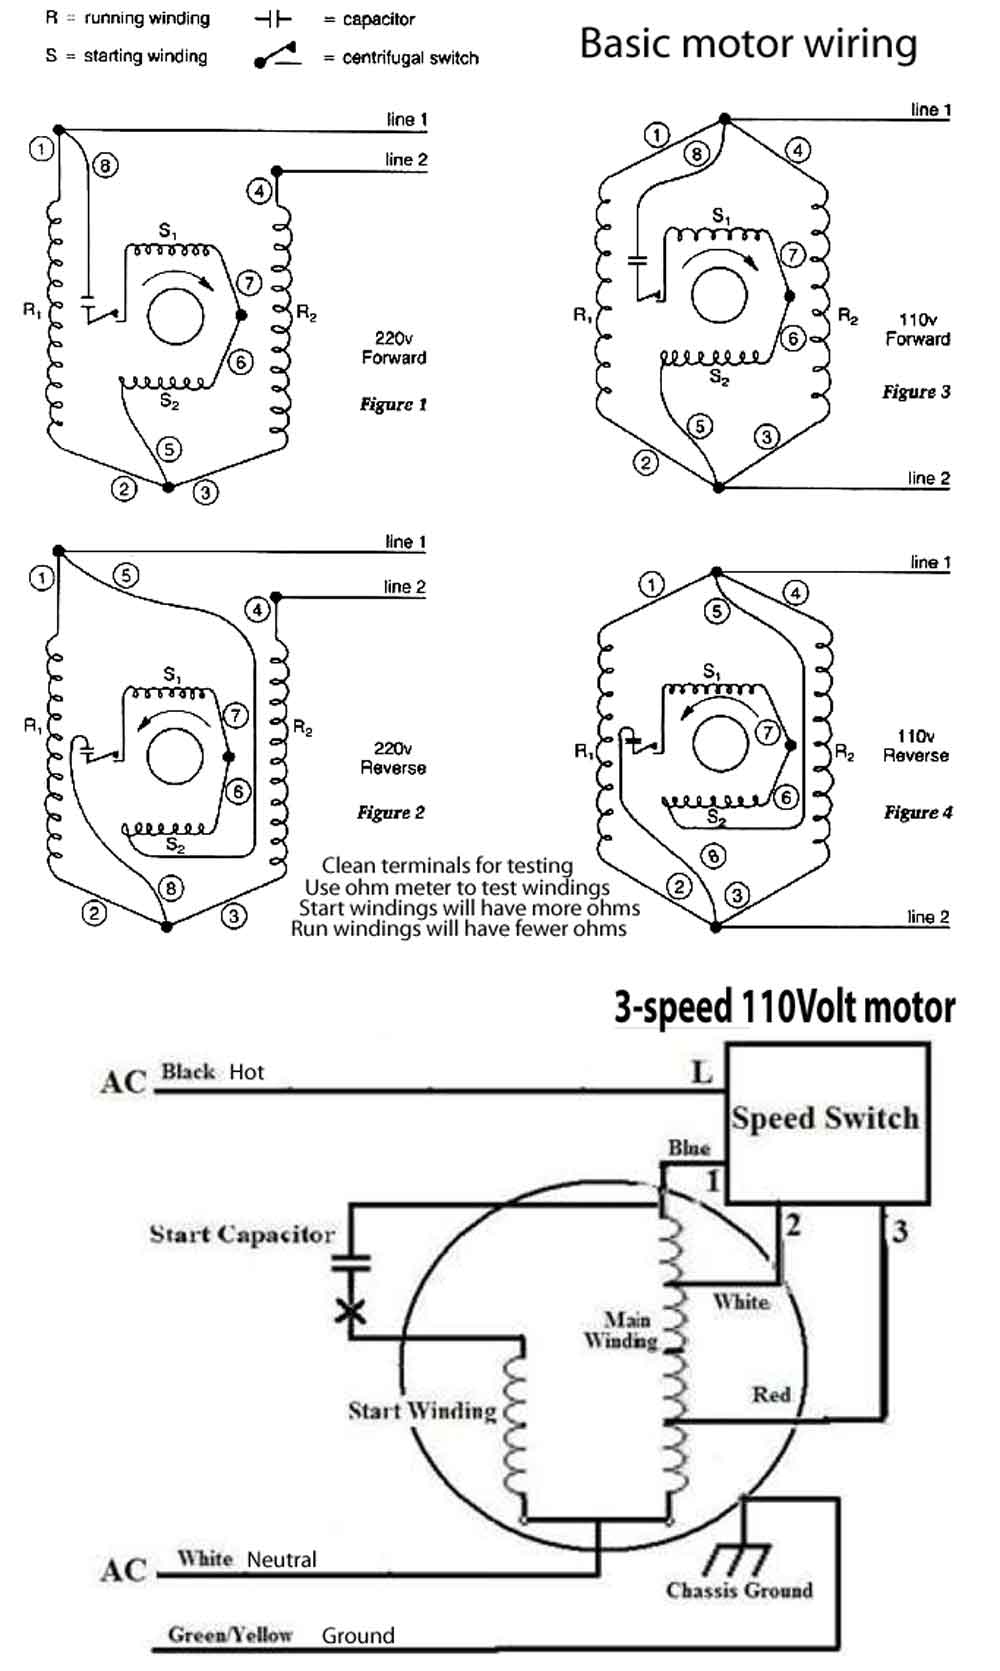 How To Wire 3 Speed Fan Switch 110 Cord Wiring Diagram Motor